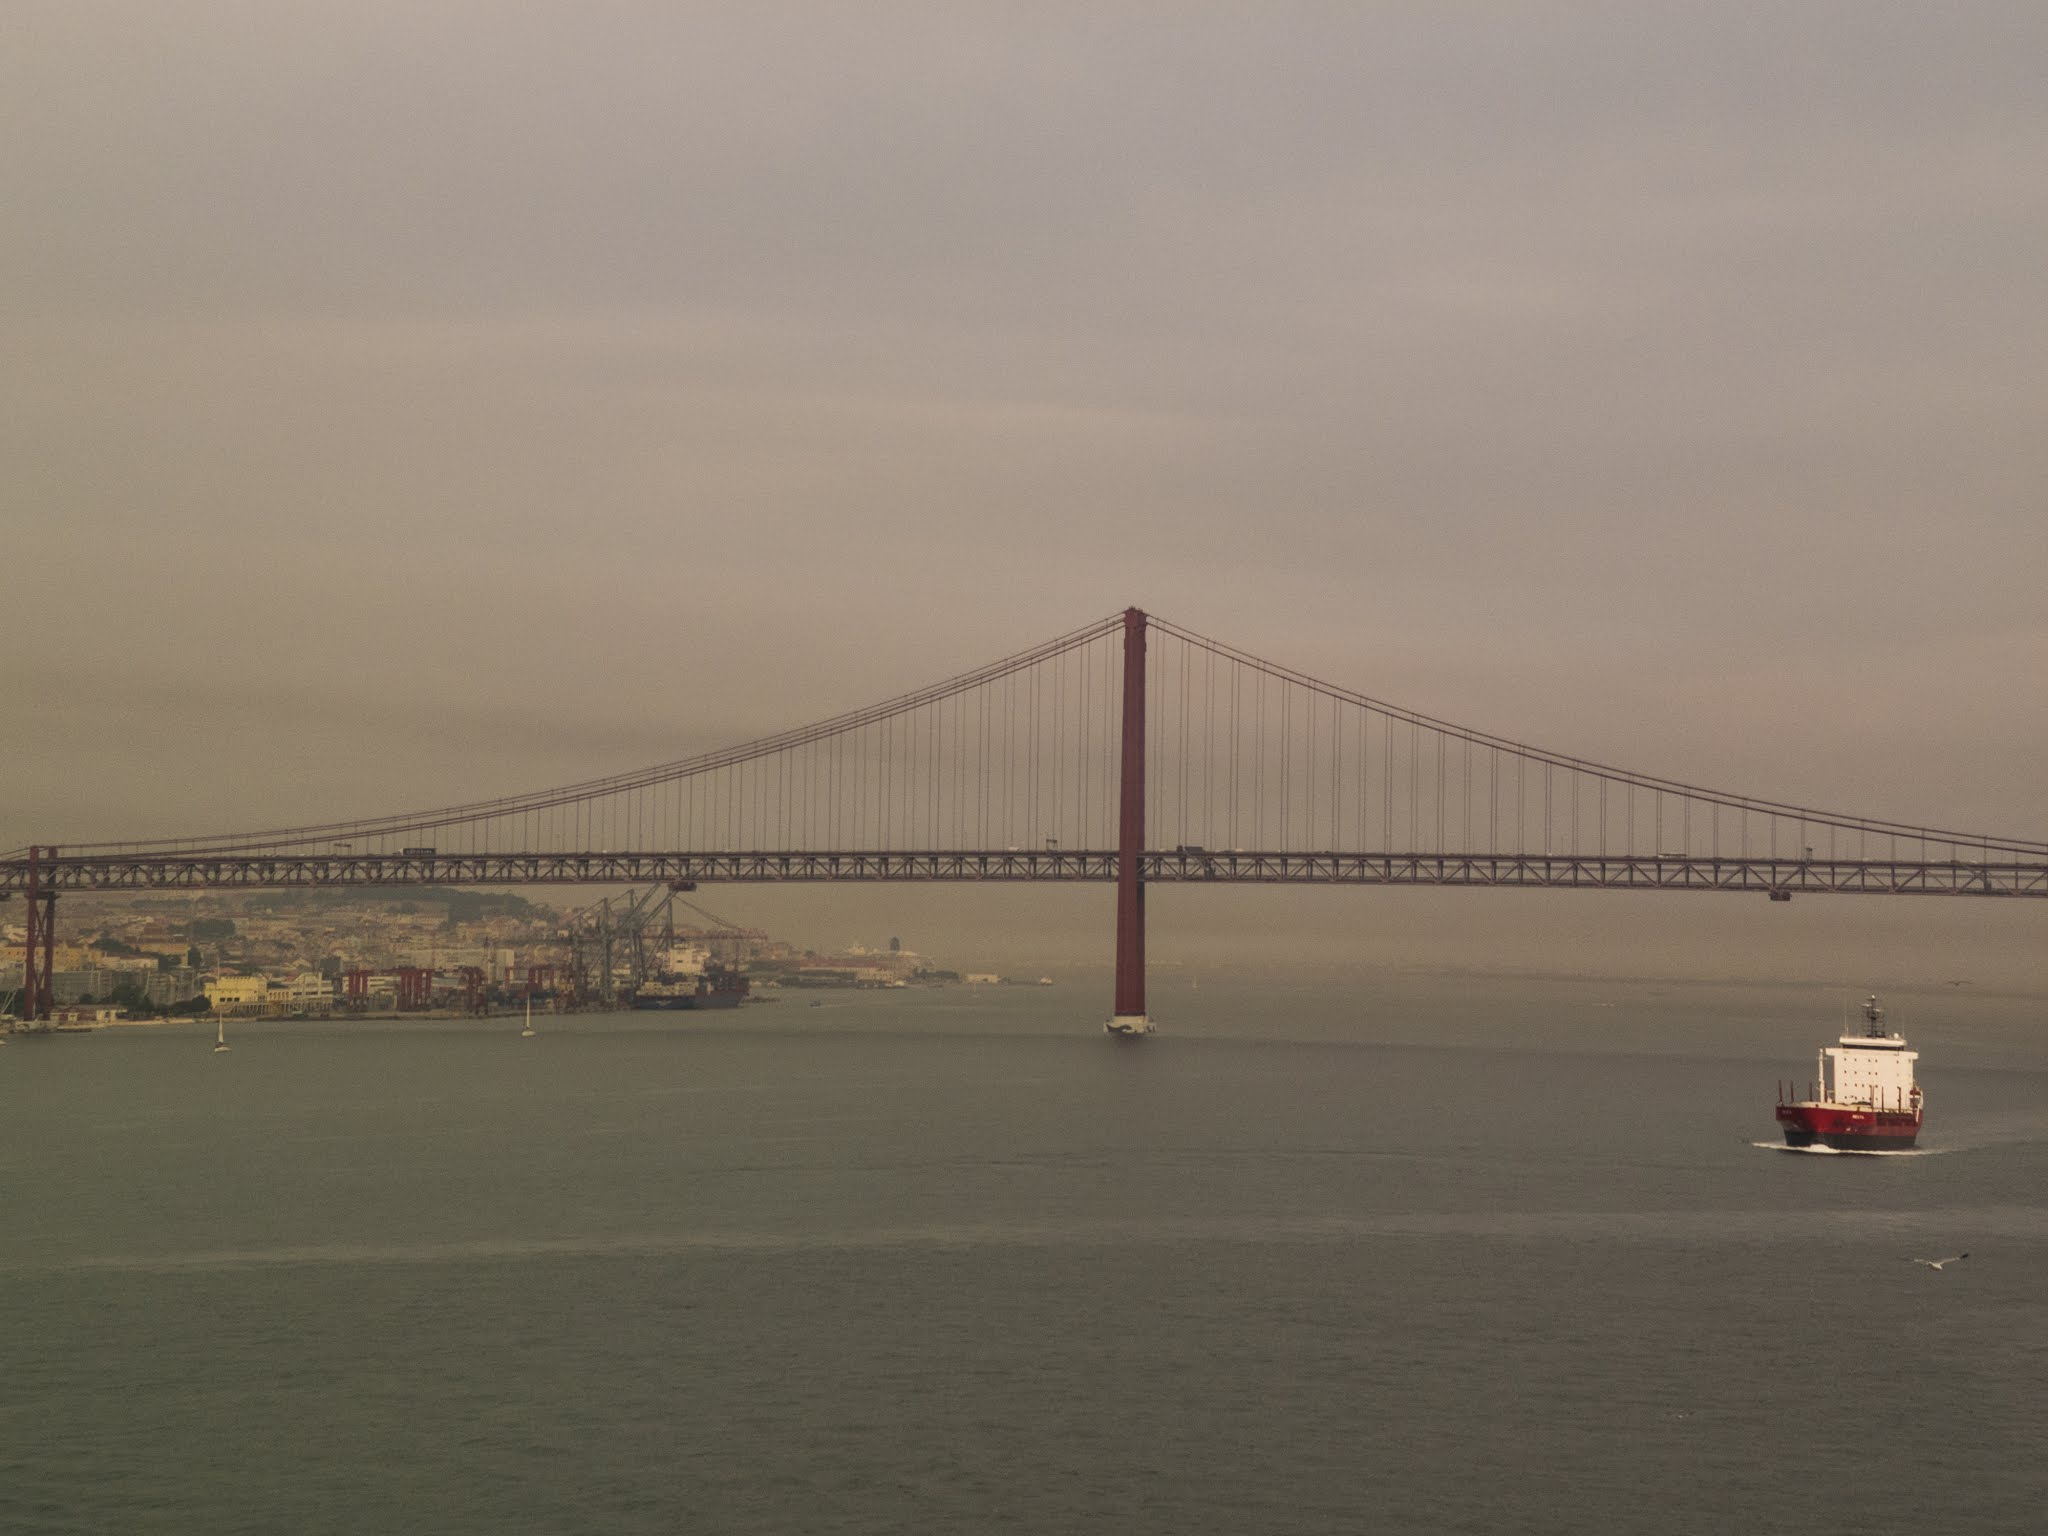 View of Lisbon's suspension bridge from the Tagus River.